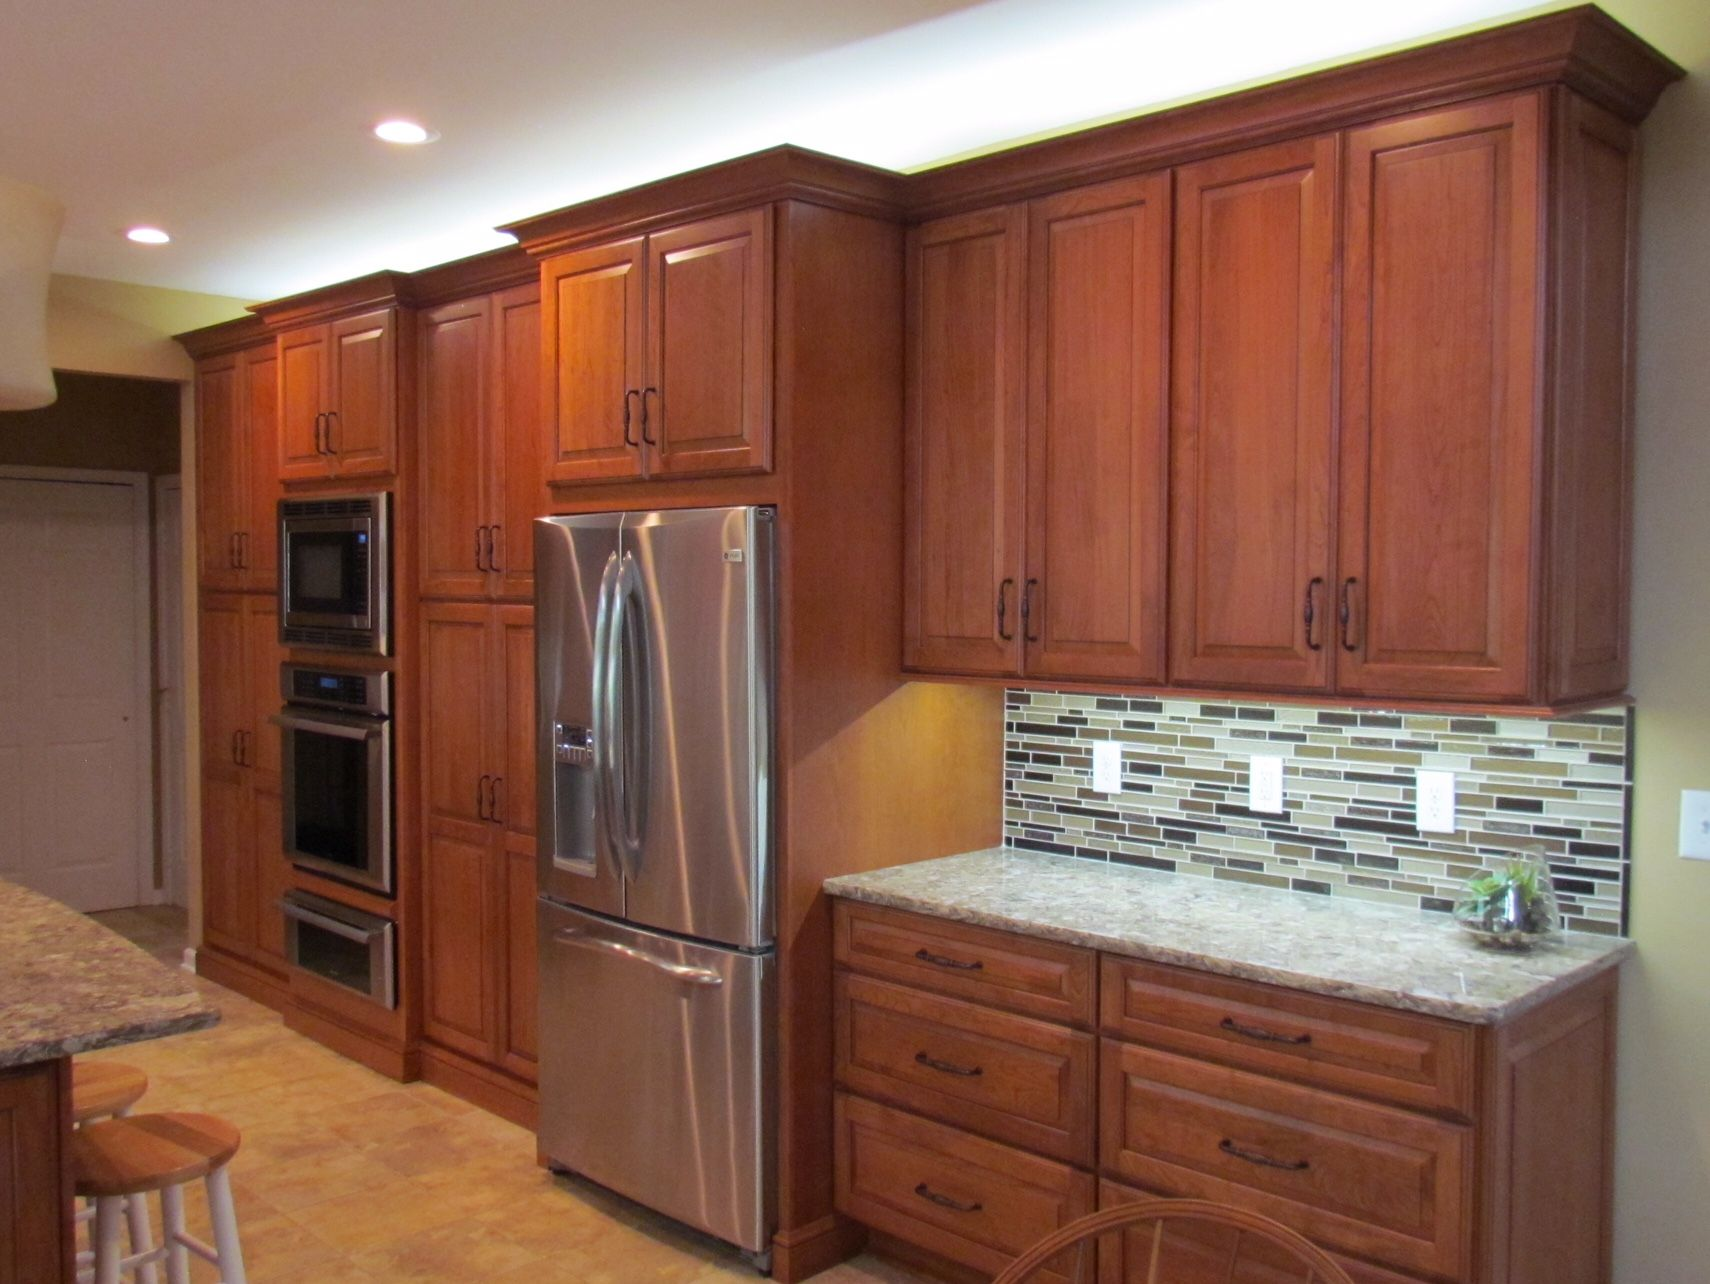 installing the glazing kitchen cabinets. Cabinets- Medallion Wood Type- Cherry Door Style- Brookhill Finish- Pecan Burnish Glaze Installing The Glazing Kitchen Cabinets C